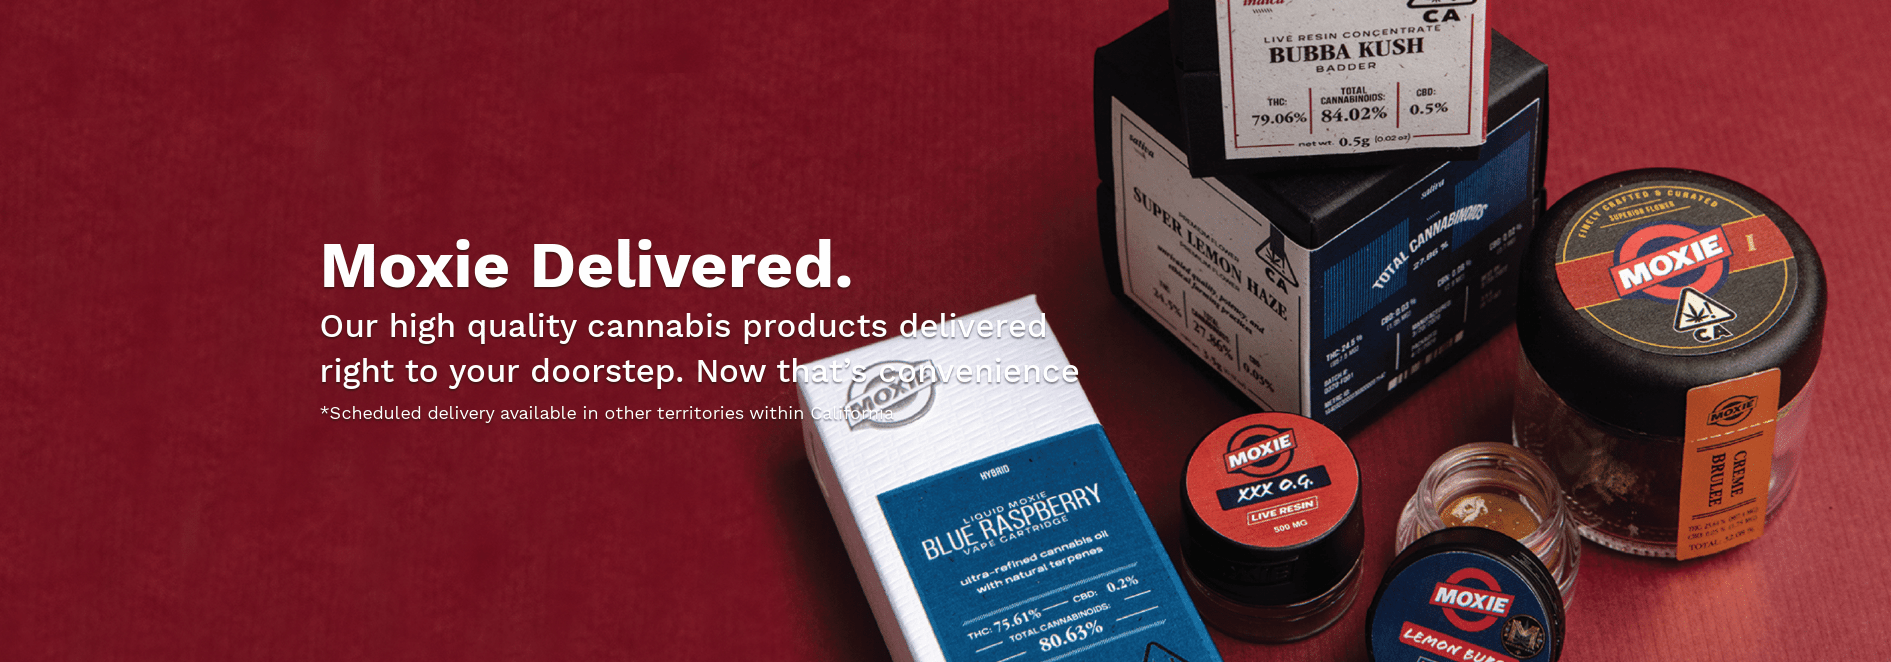 Moxie Cannabis Delivery CBD THC Coupons Hight Quality Products